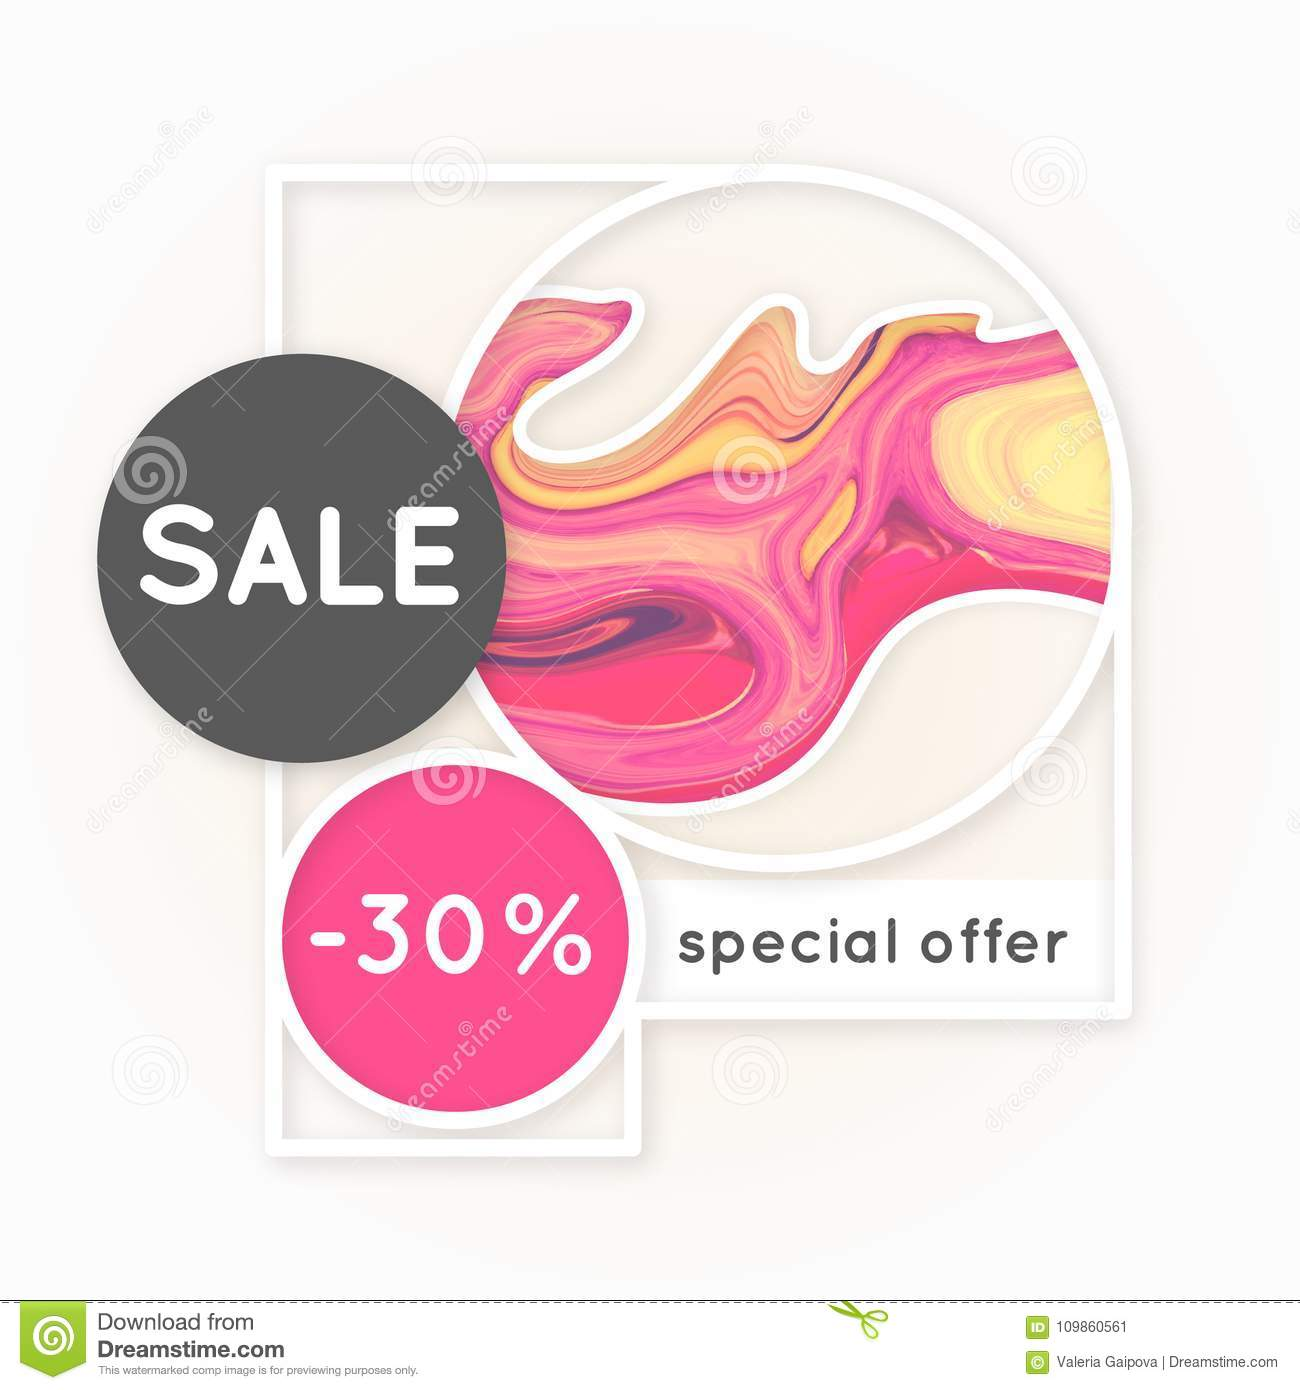 Sale. Marbling. Marble texture. Discount. Vector abstract colorful background. Paint splash. Colorful fluid. Shopping